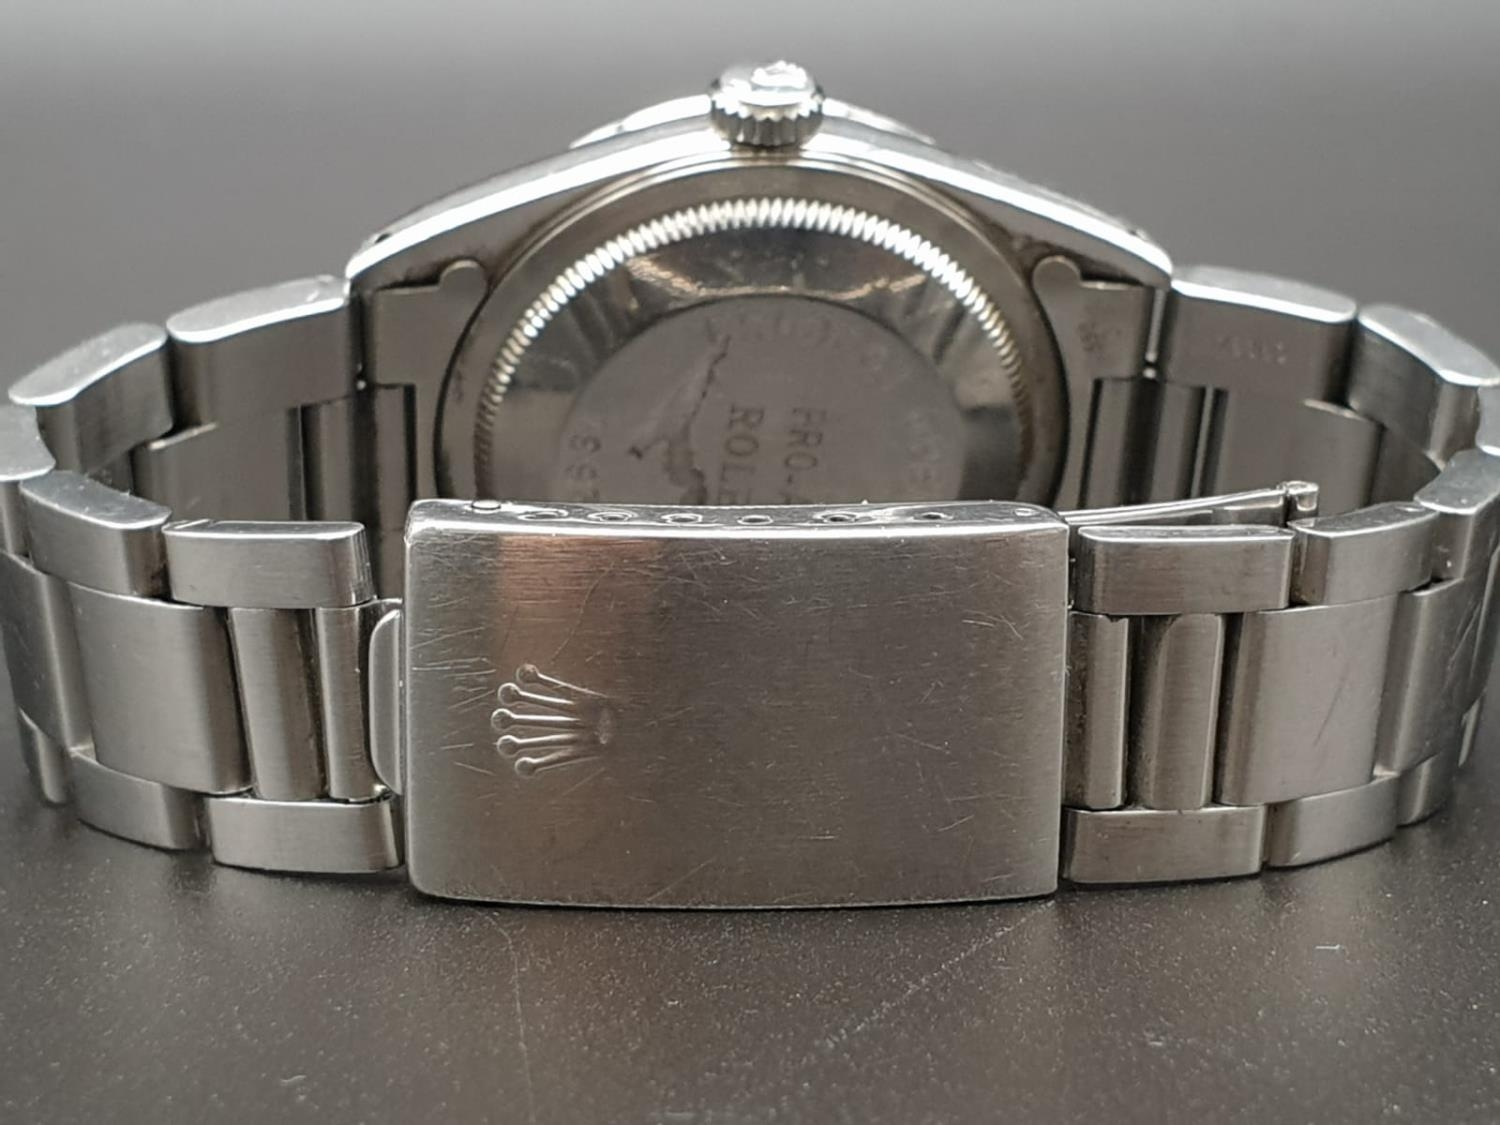 ROLEX OYSTER DATEJUST IN STAINLESS STEEL WITH ATTRACTIVE LIGHT OYSTER FACE, FWO 36MM - Image 6 of 10